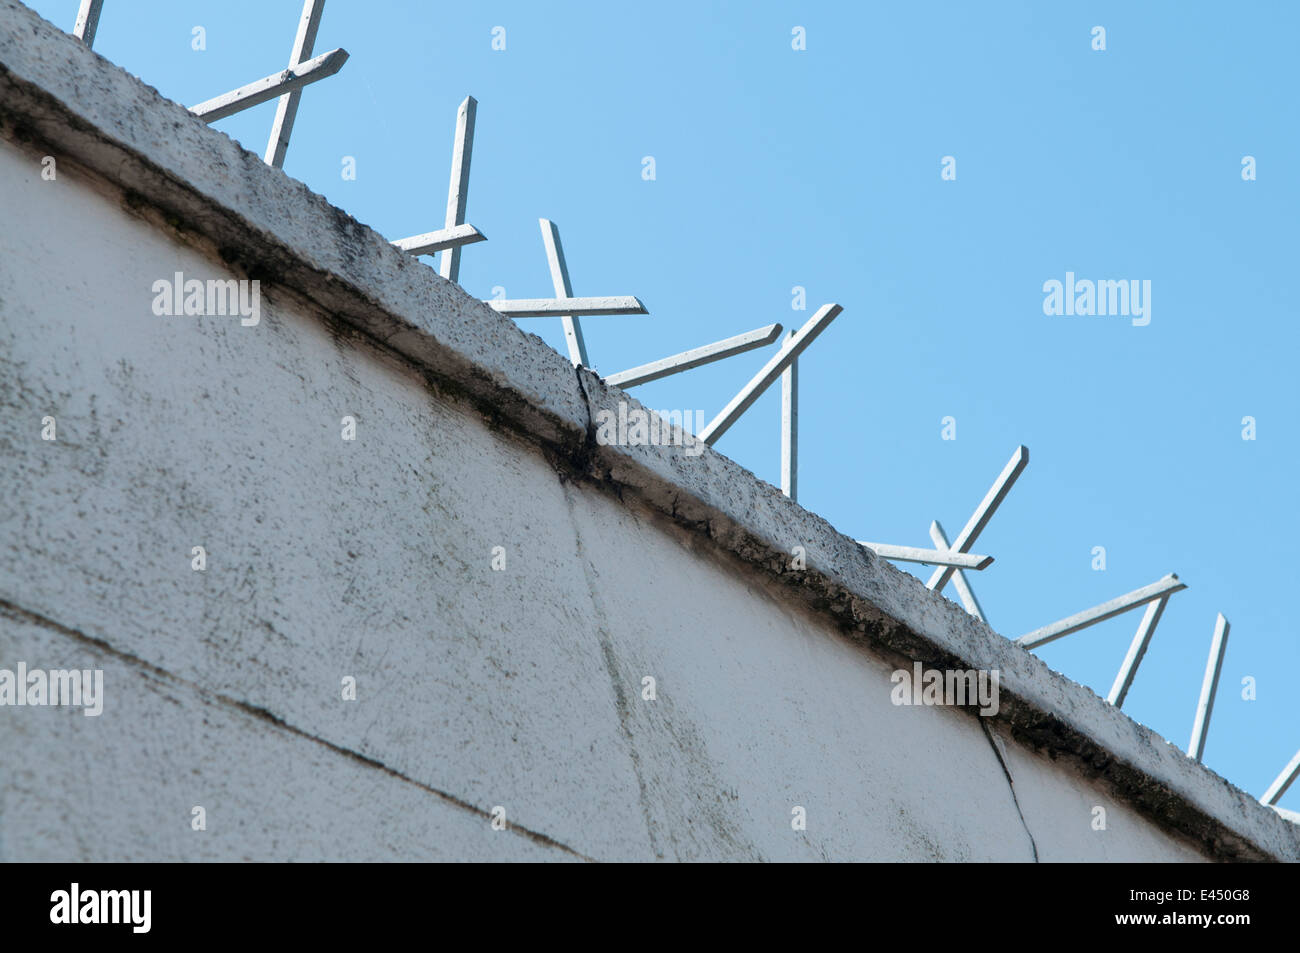 Security spikes on top of a wall. - Stock Image